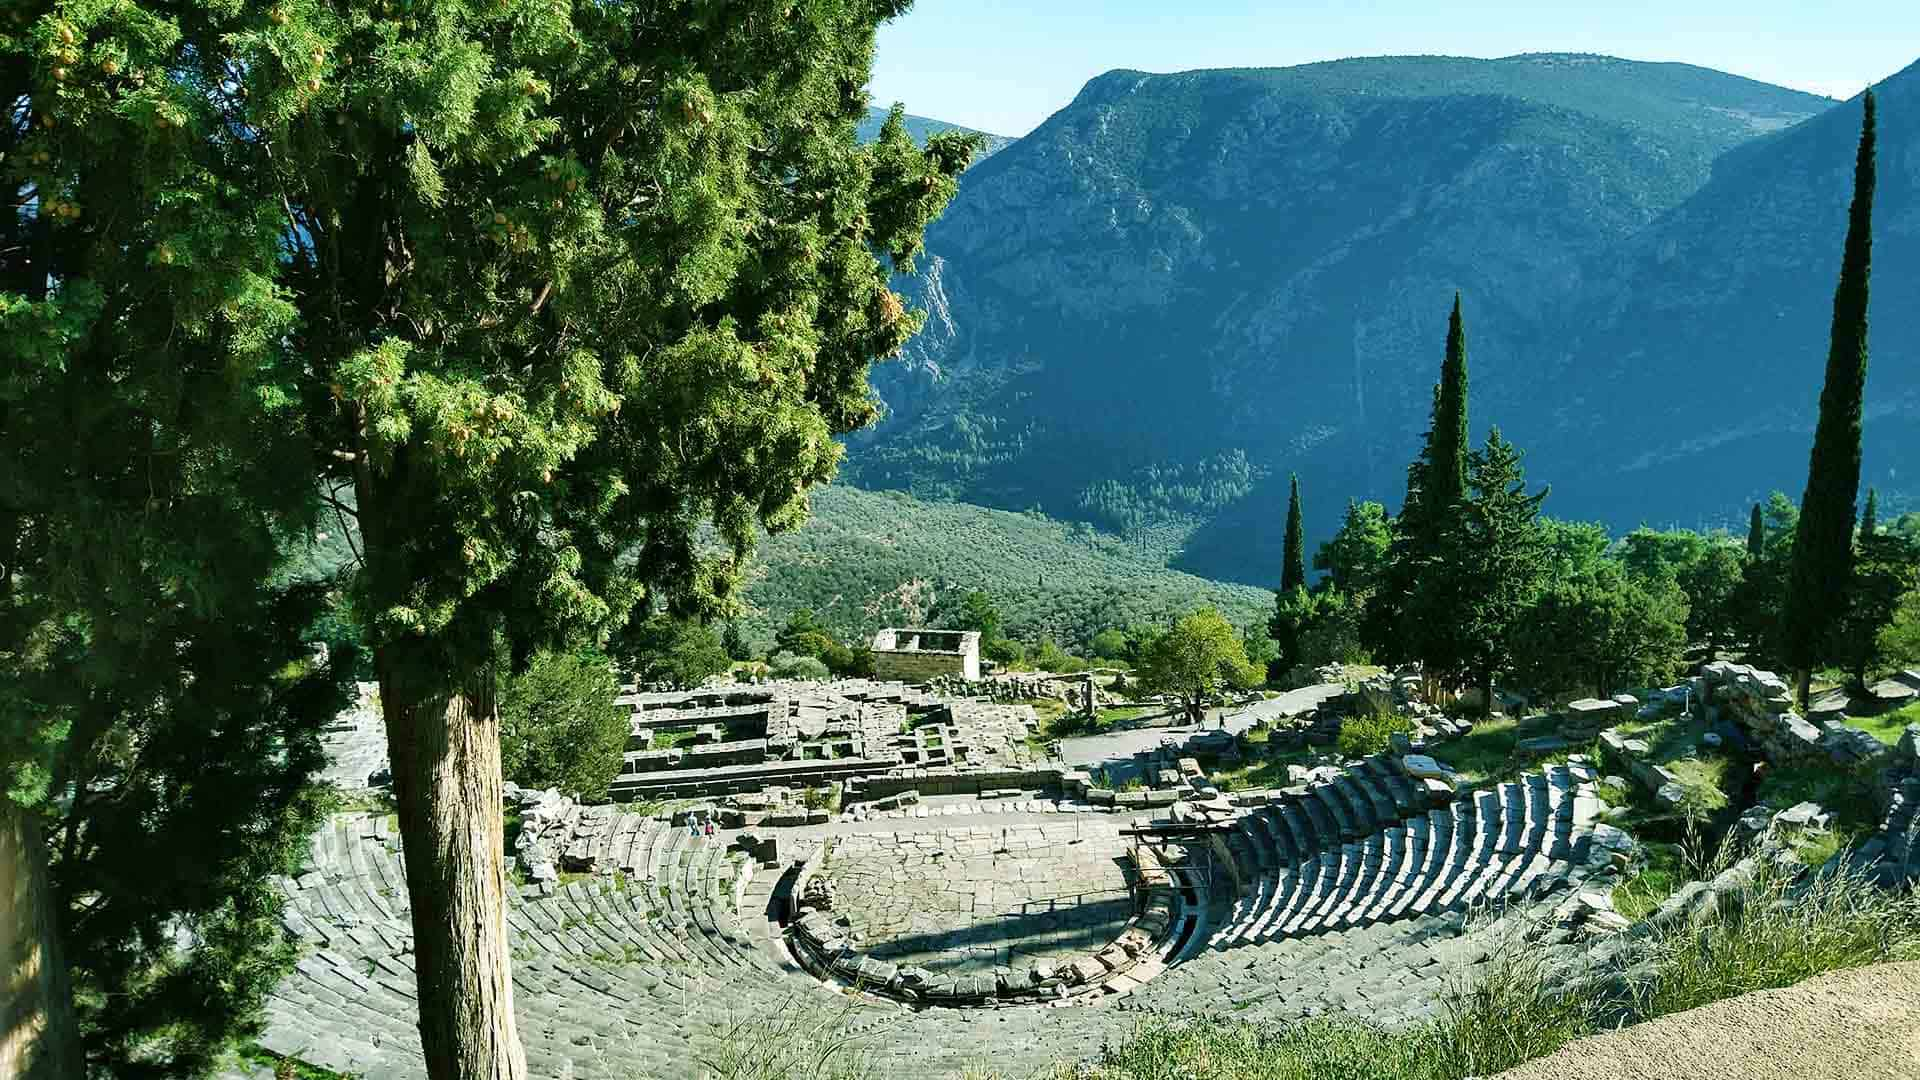 Encounter the theatre in Delphi with a dutch speaking or german speaking guide